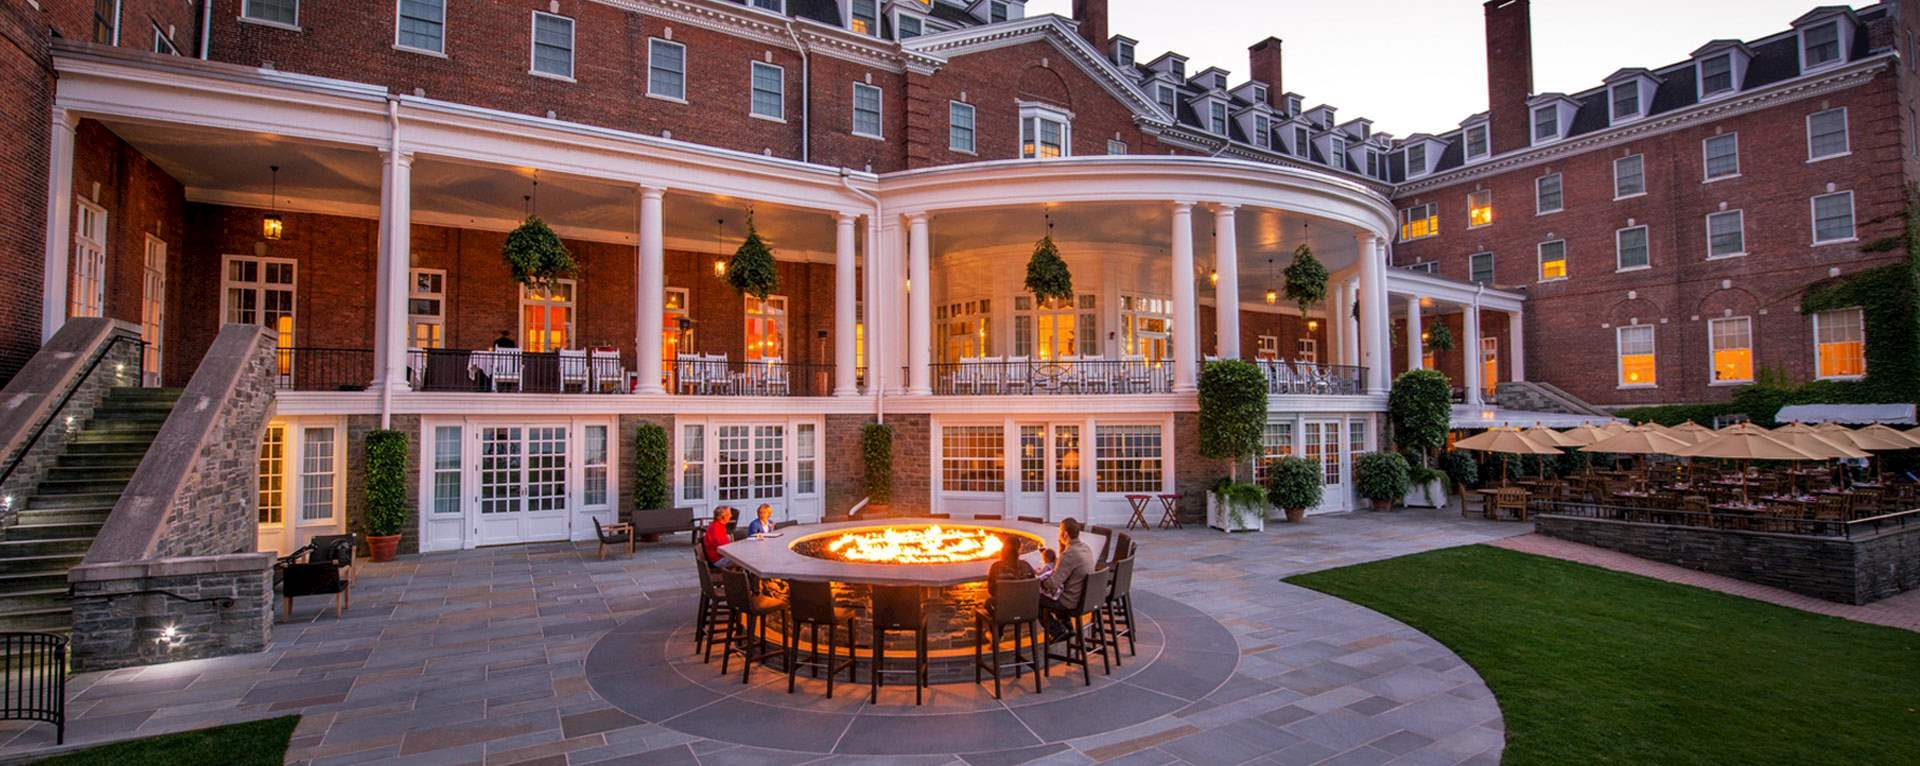 Albergo York Luxury Cooperstown Hotel The Otesaga Resort Hotel